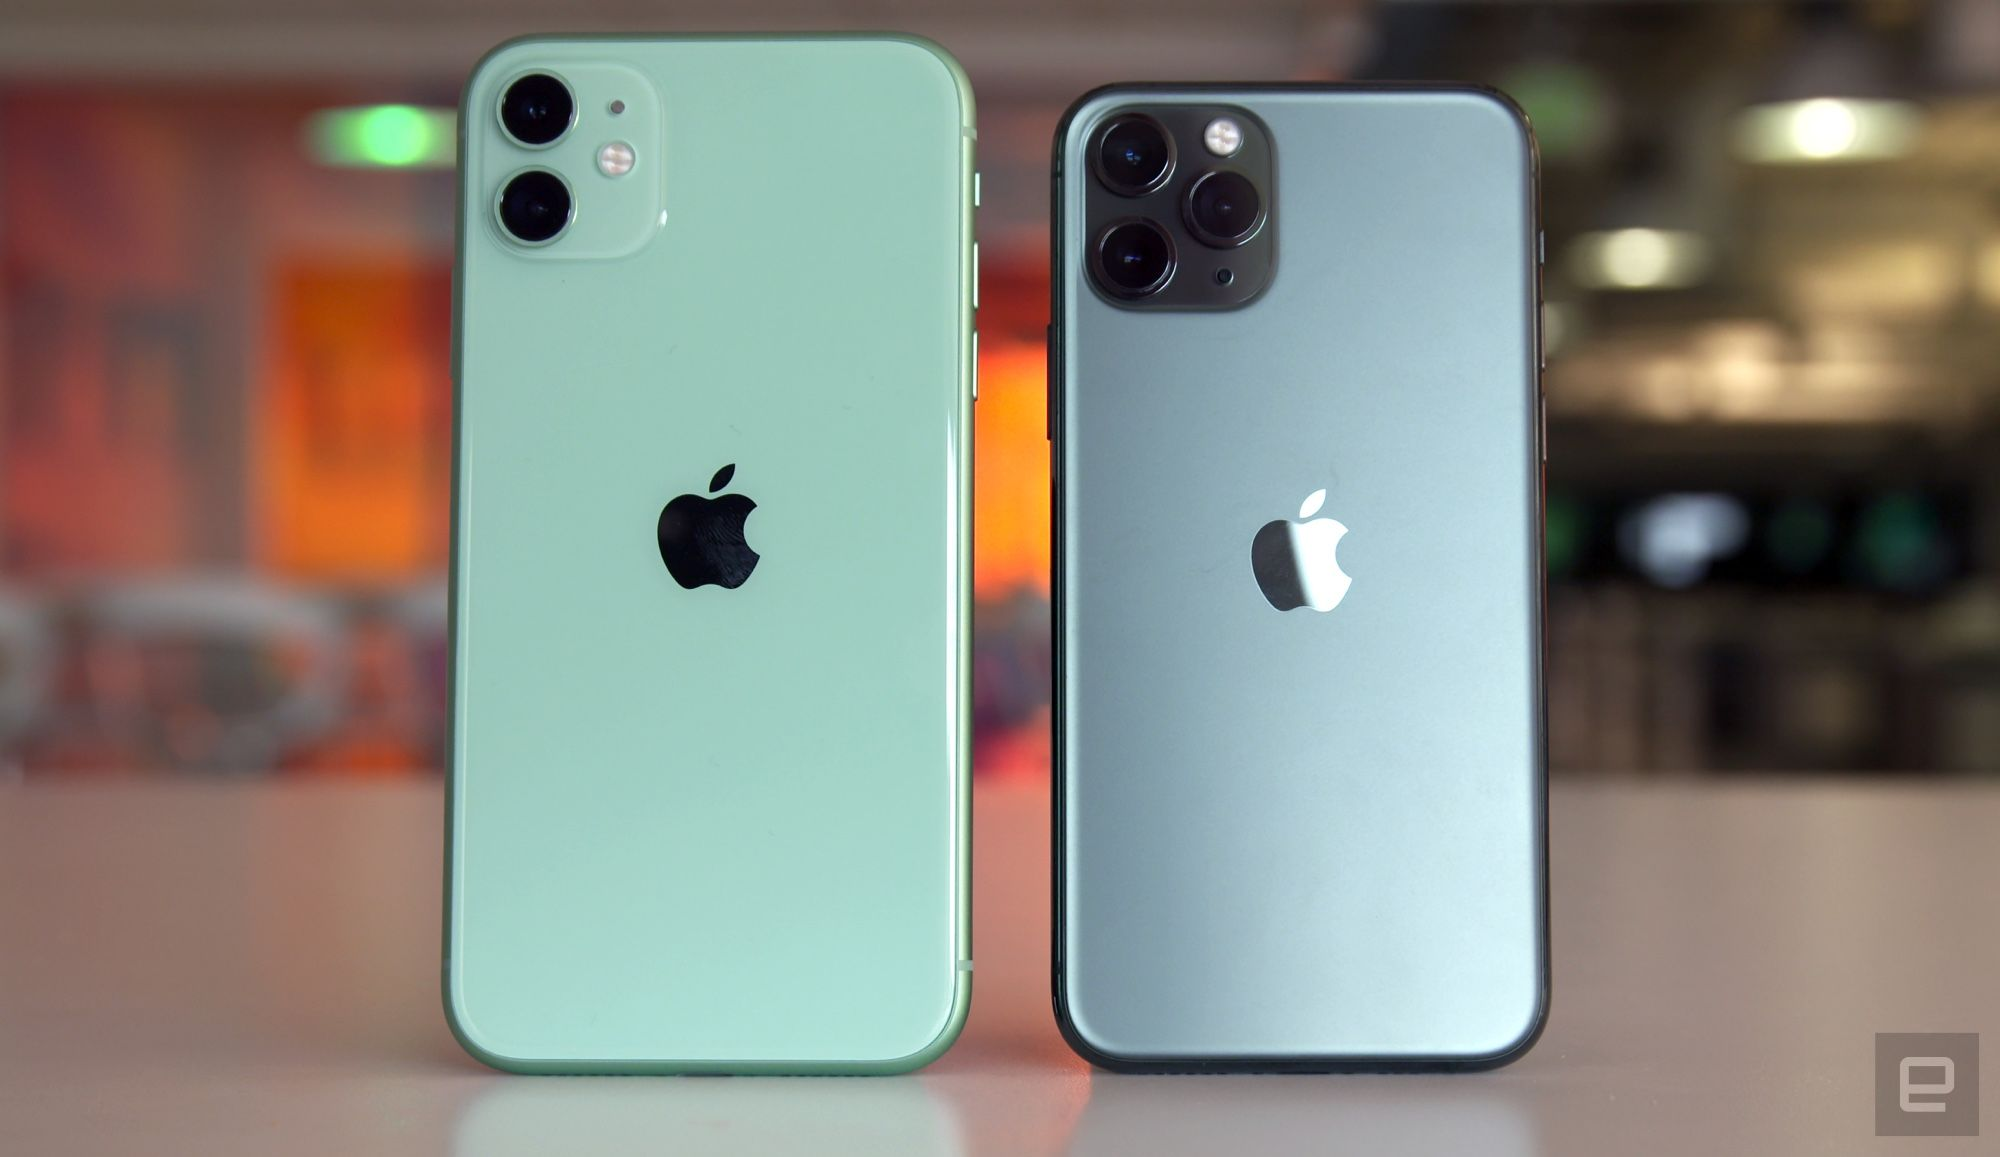 Apple iPhone 11 review: So good you (probably) don't need the Pro - The Amuse Tech